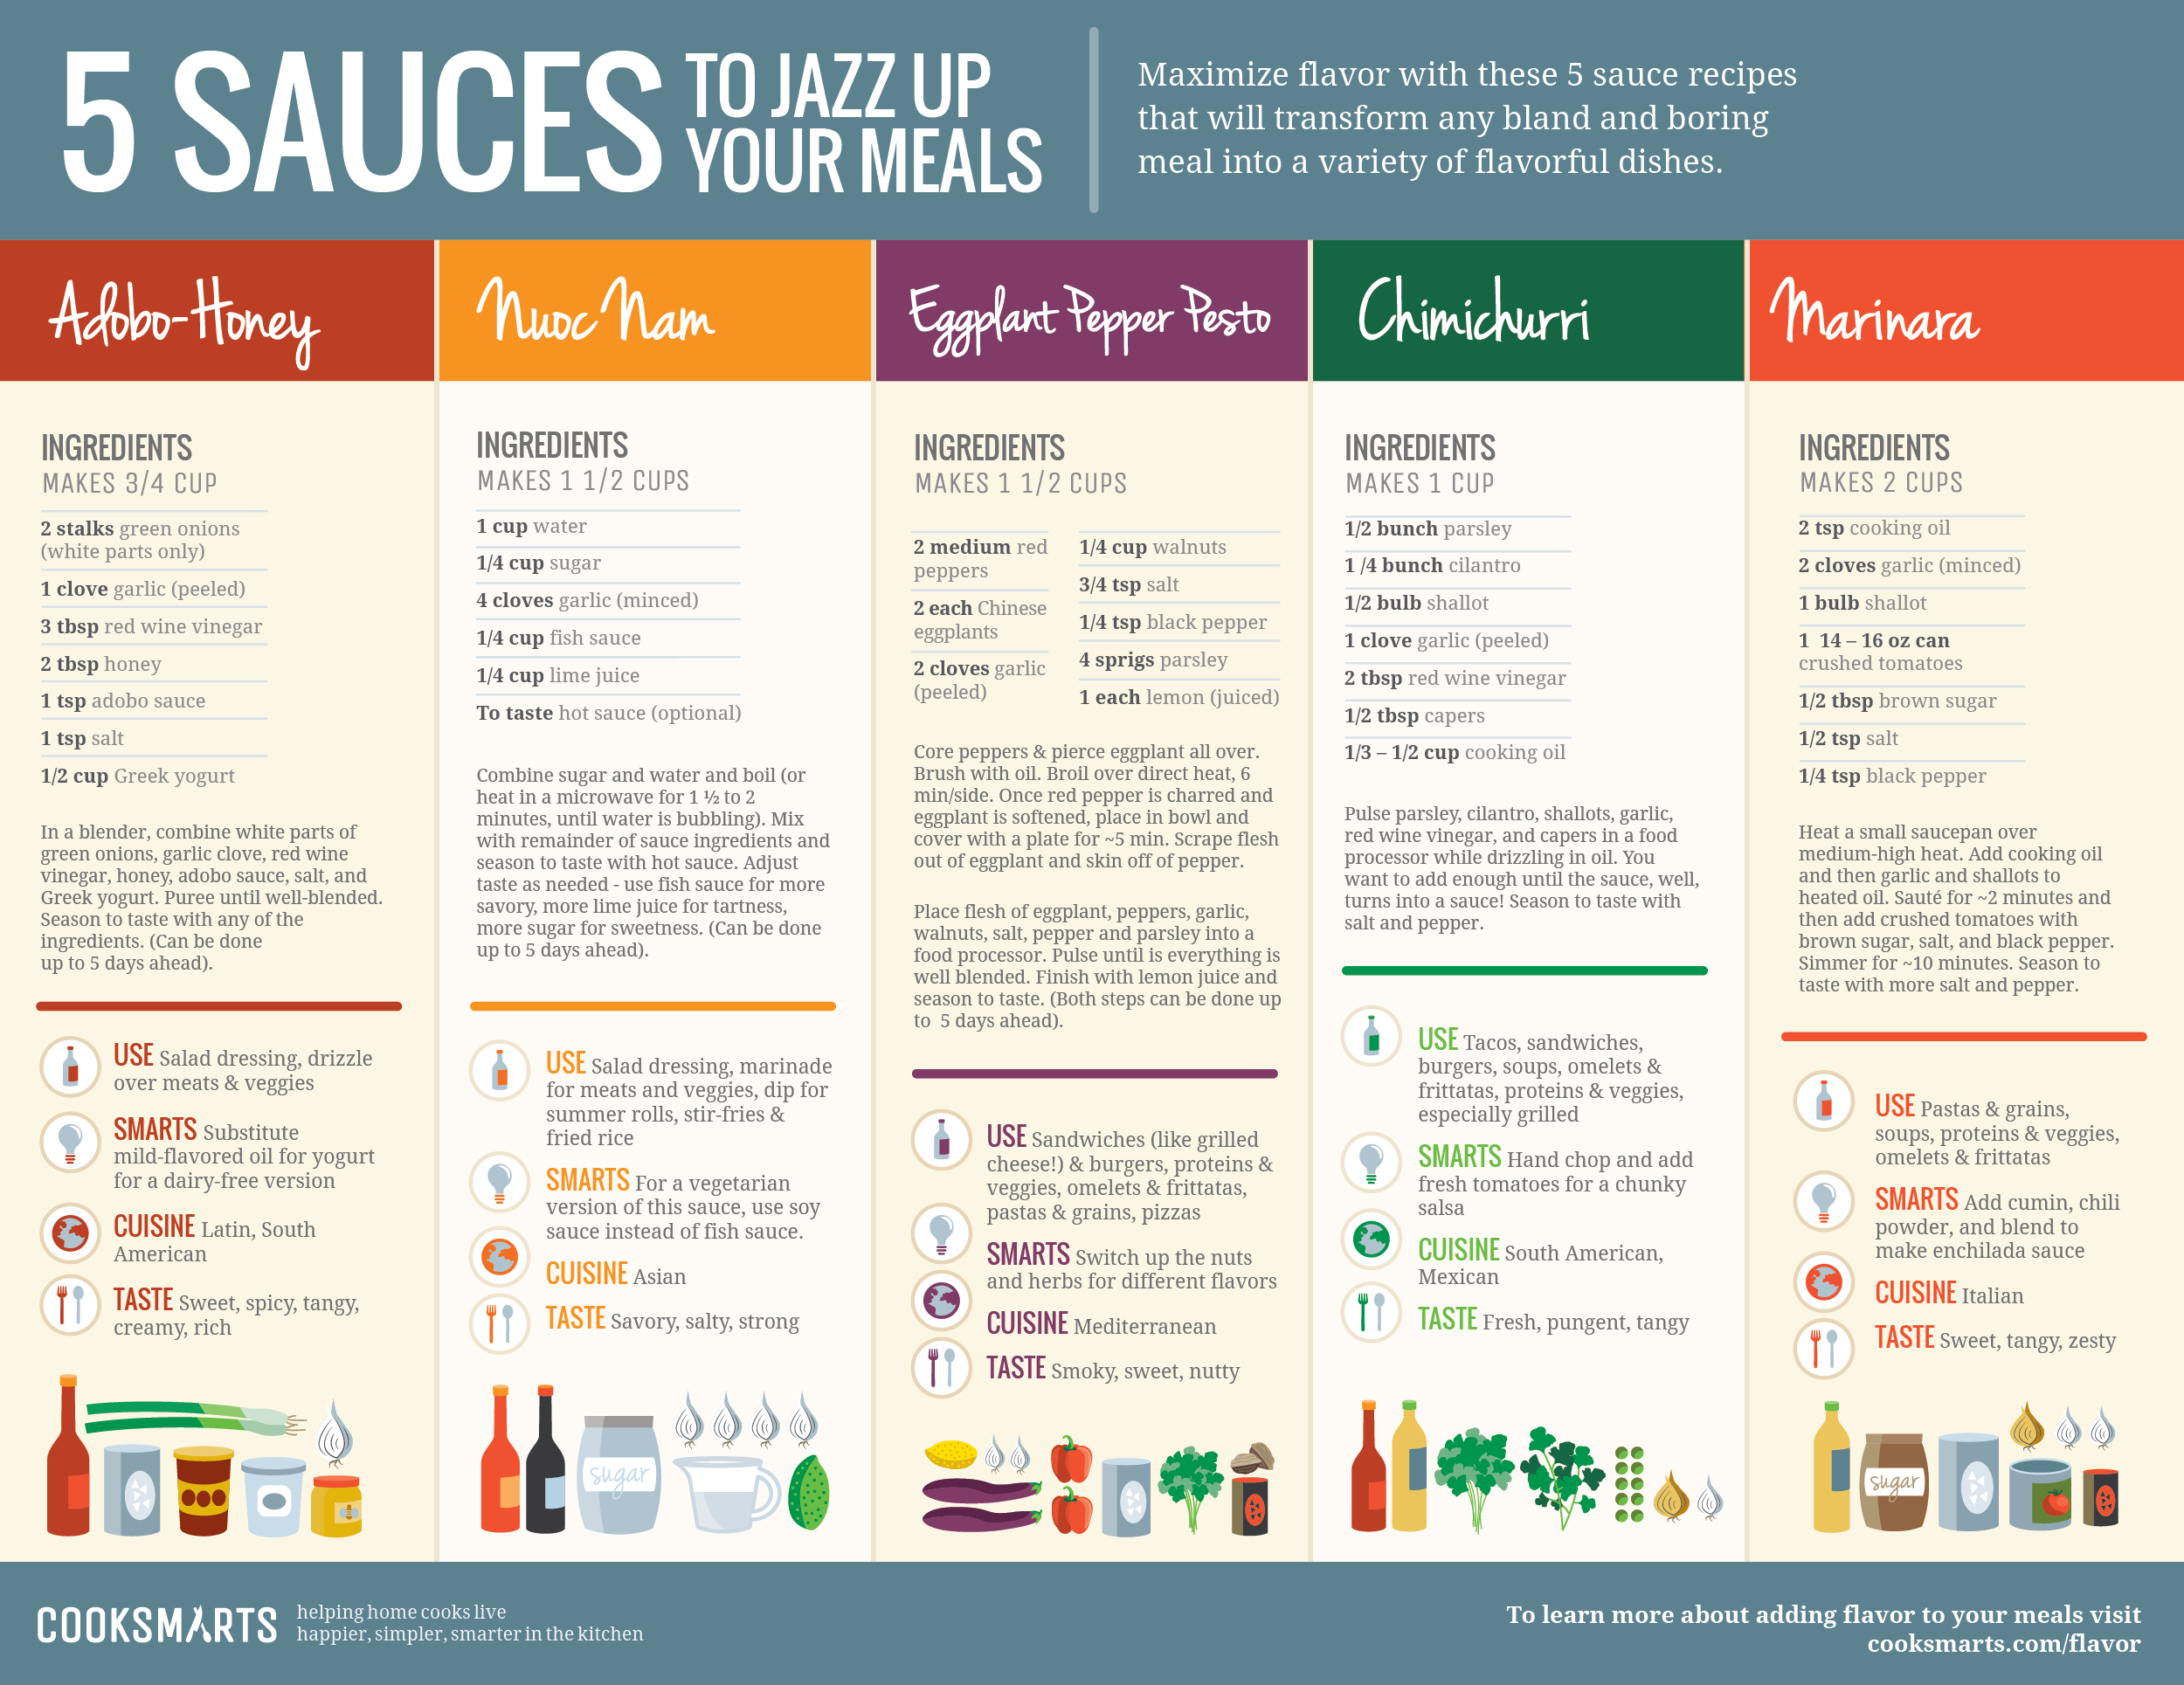 Five Sauces to Jazz Up Your Meals by @cooksmarts #recipes